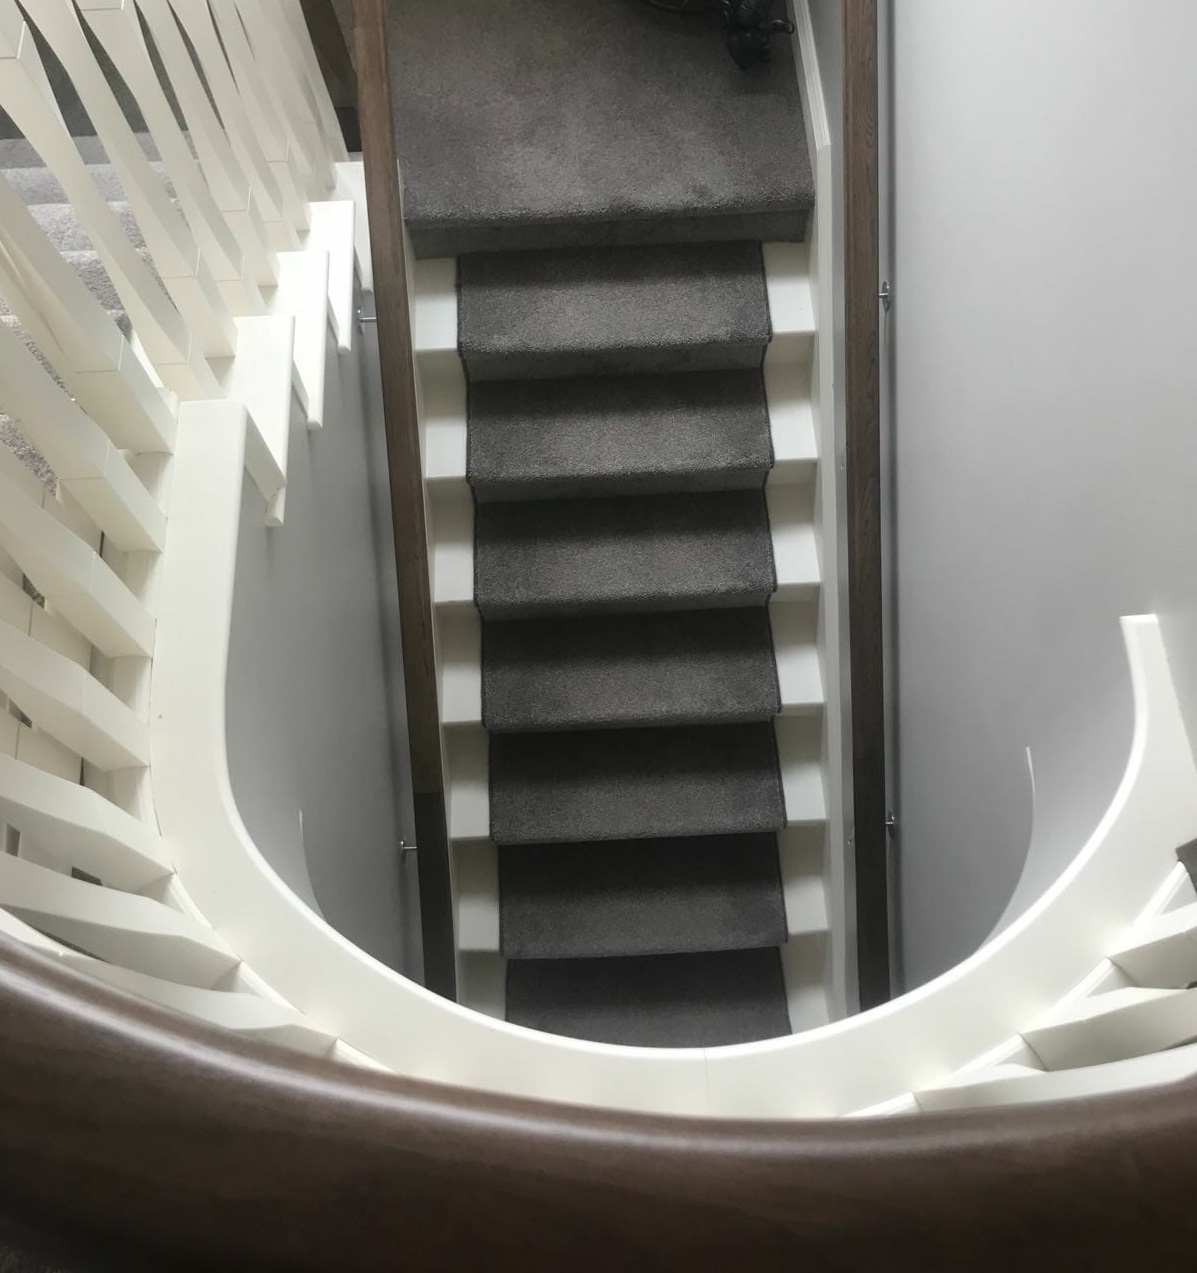 George Quinn Stair Parts Plus - Staircase Design - Painted Stair Treads with Runner